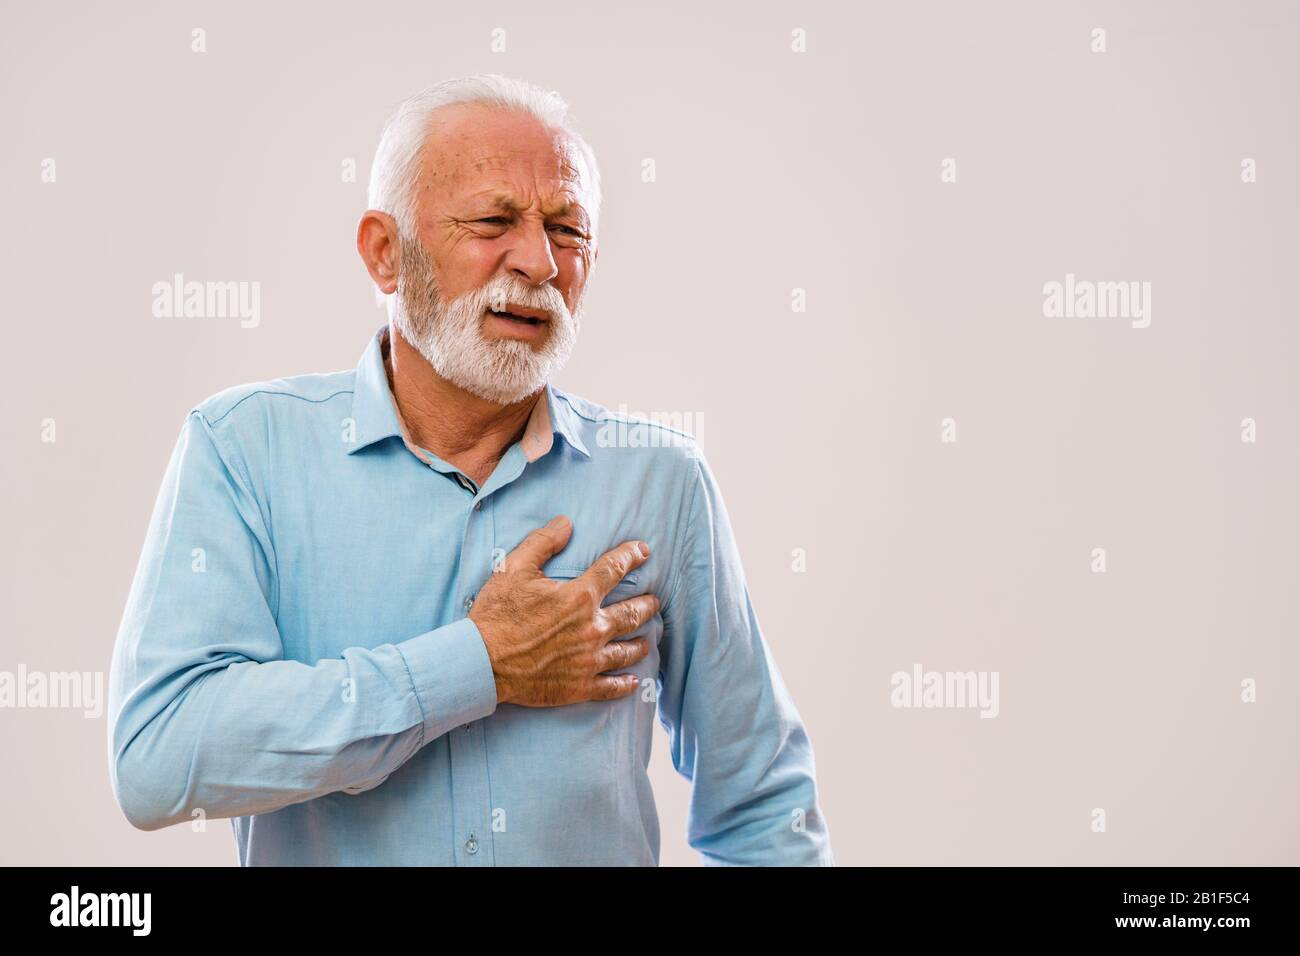 Portrait of senior man who is having pain in his chest. Stock Photo